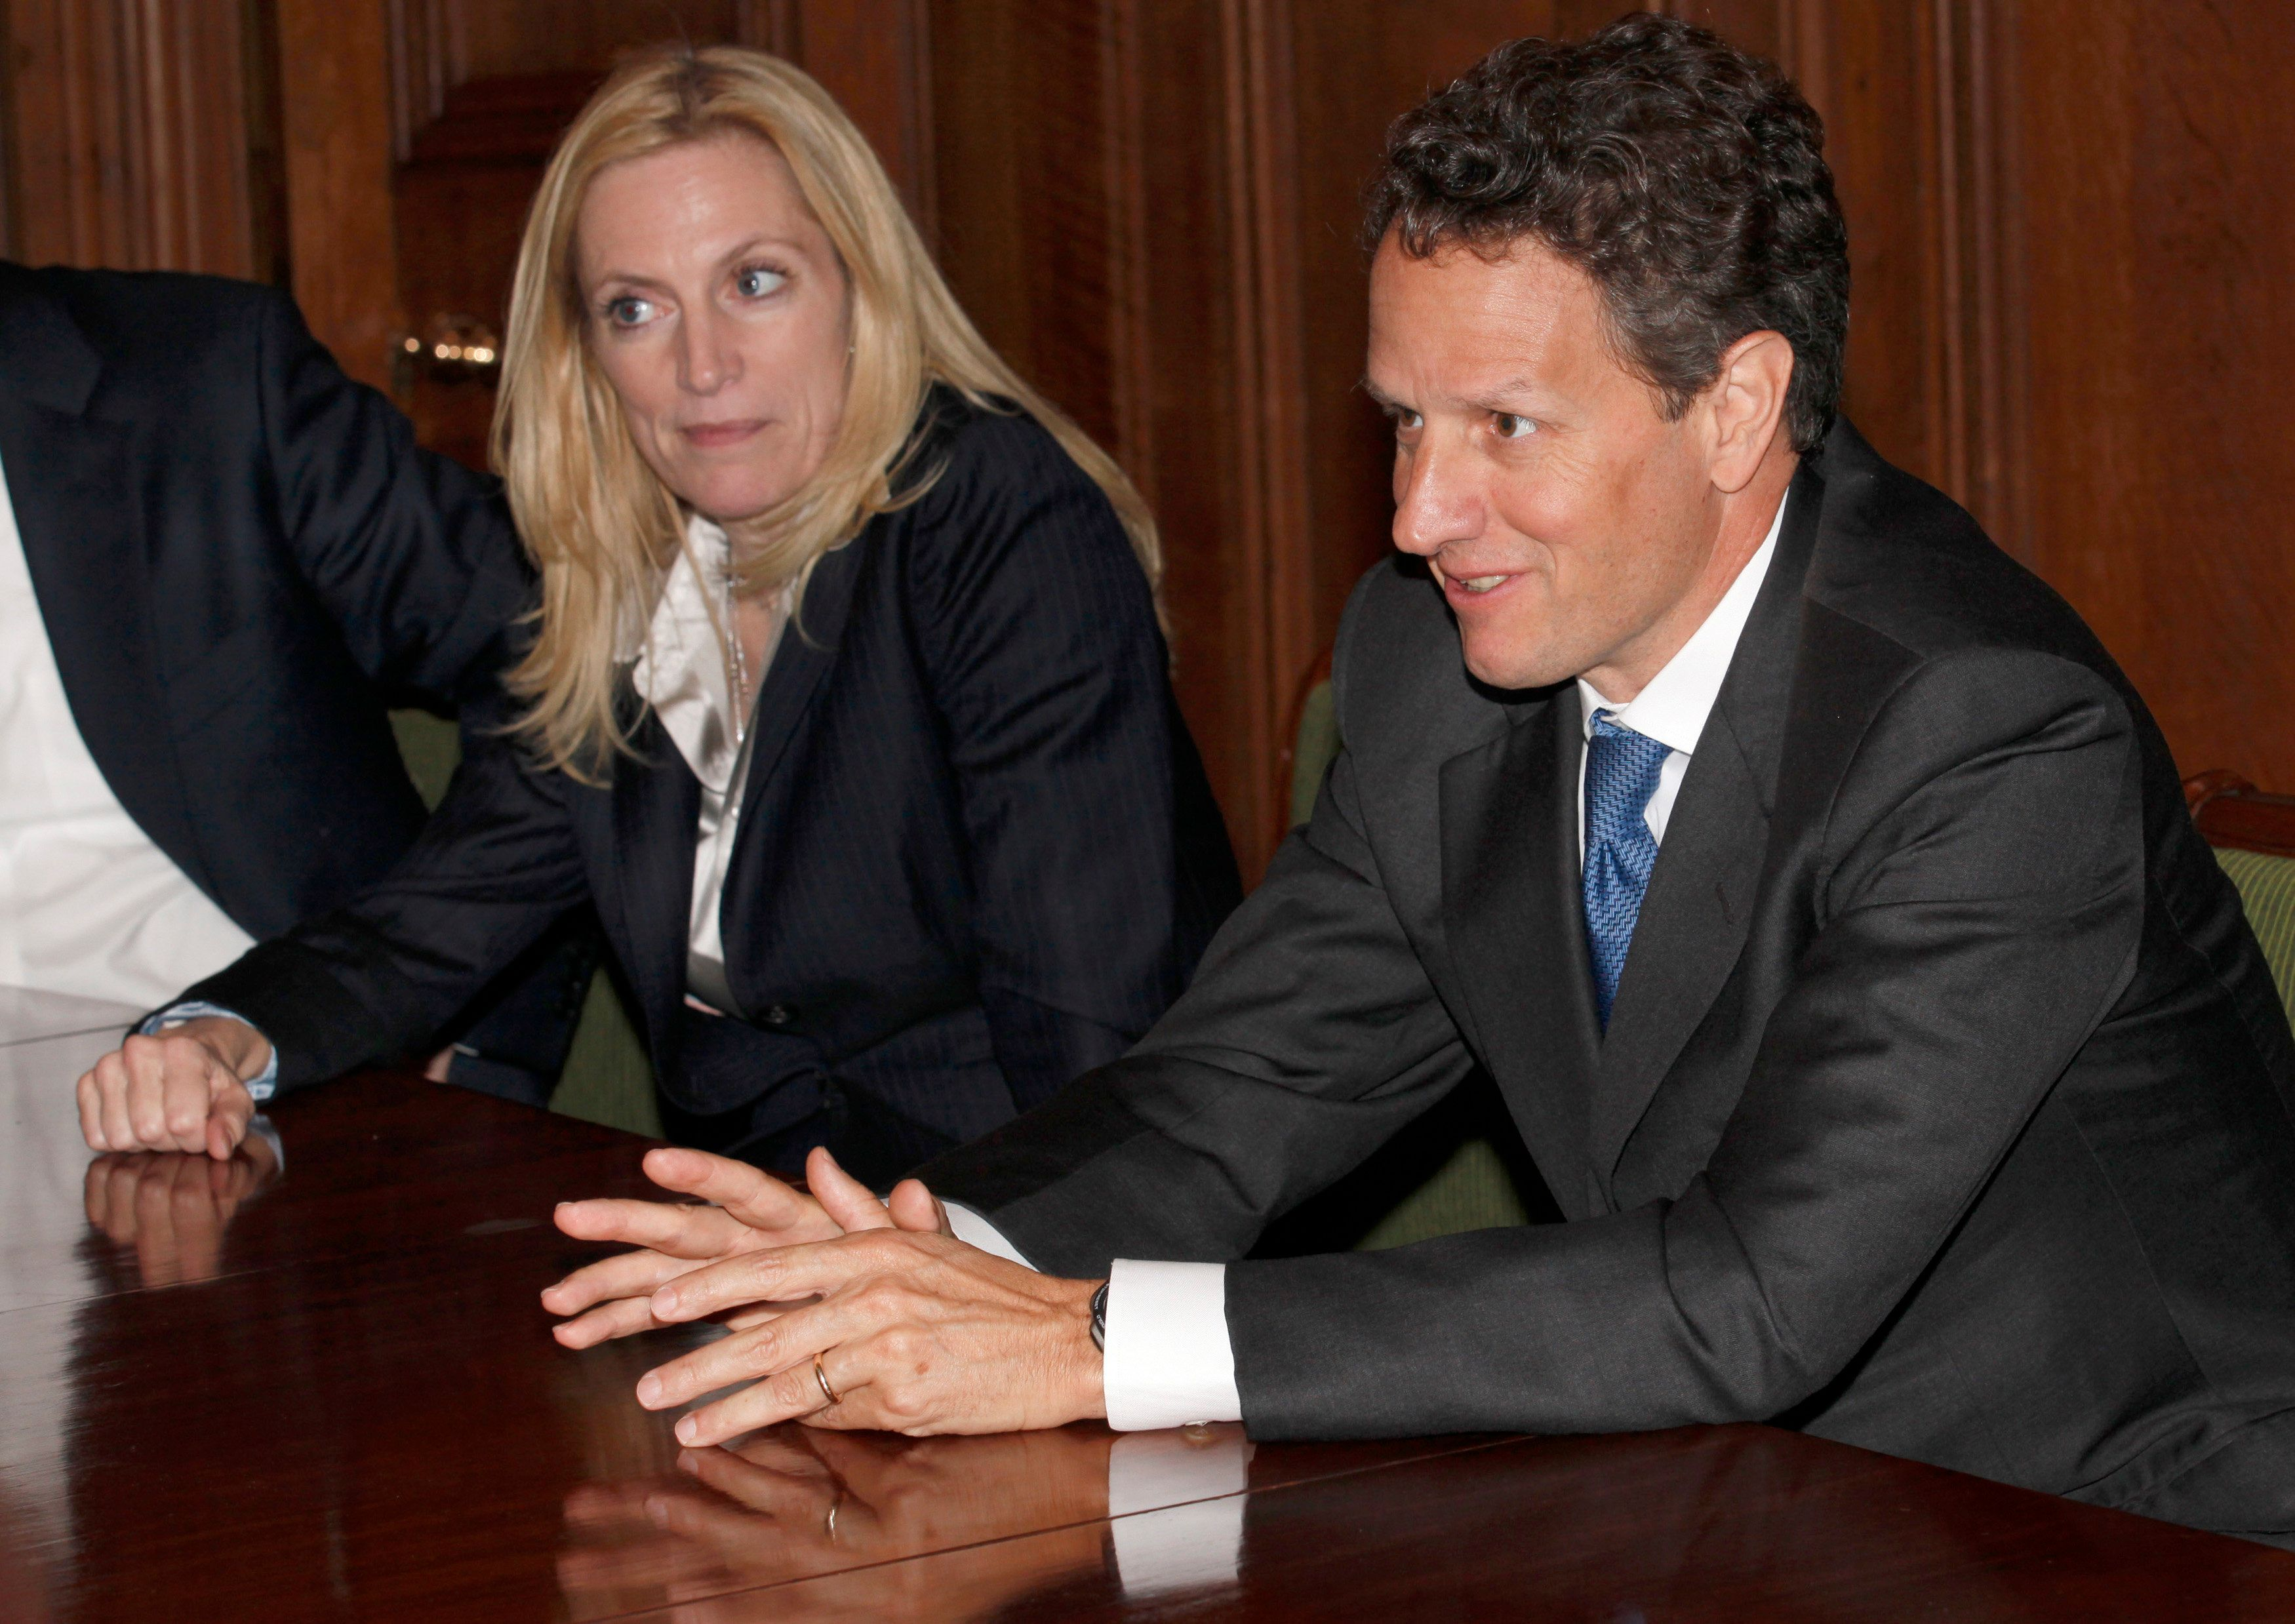 U.S. Treasury Secretary Timothy Geithner (R), with the U.S. Undersecretary of the Treasury for International Affairs, Lael Brainard, speaks during a meeting with Britain's Chancellor of the Exchequer, George Osborne, at 11 Downing Street in central London May 26, 2010. U.S. Treasury Secretary Timothy Geithner said on Wednesday there should be a coordinated global approach to financial reform as he kicked off a short European tour to discuss the latest developments in the euro zone crisis.     REUTERS/Suzanne Plunkett (BRITAIN - Tags: BUSINESS POLITICS)